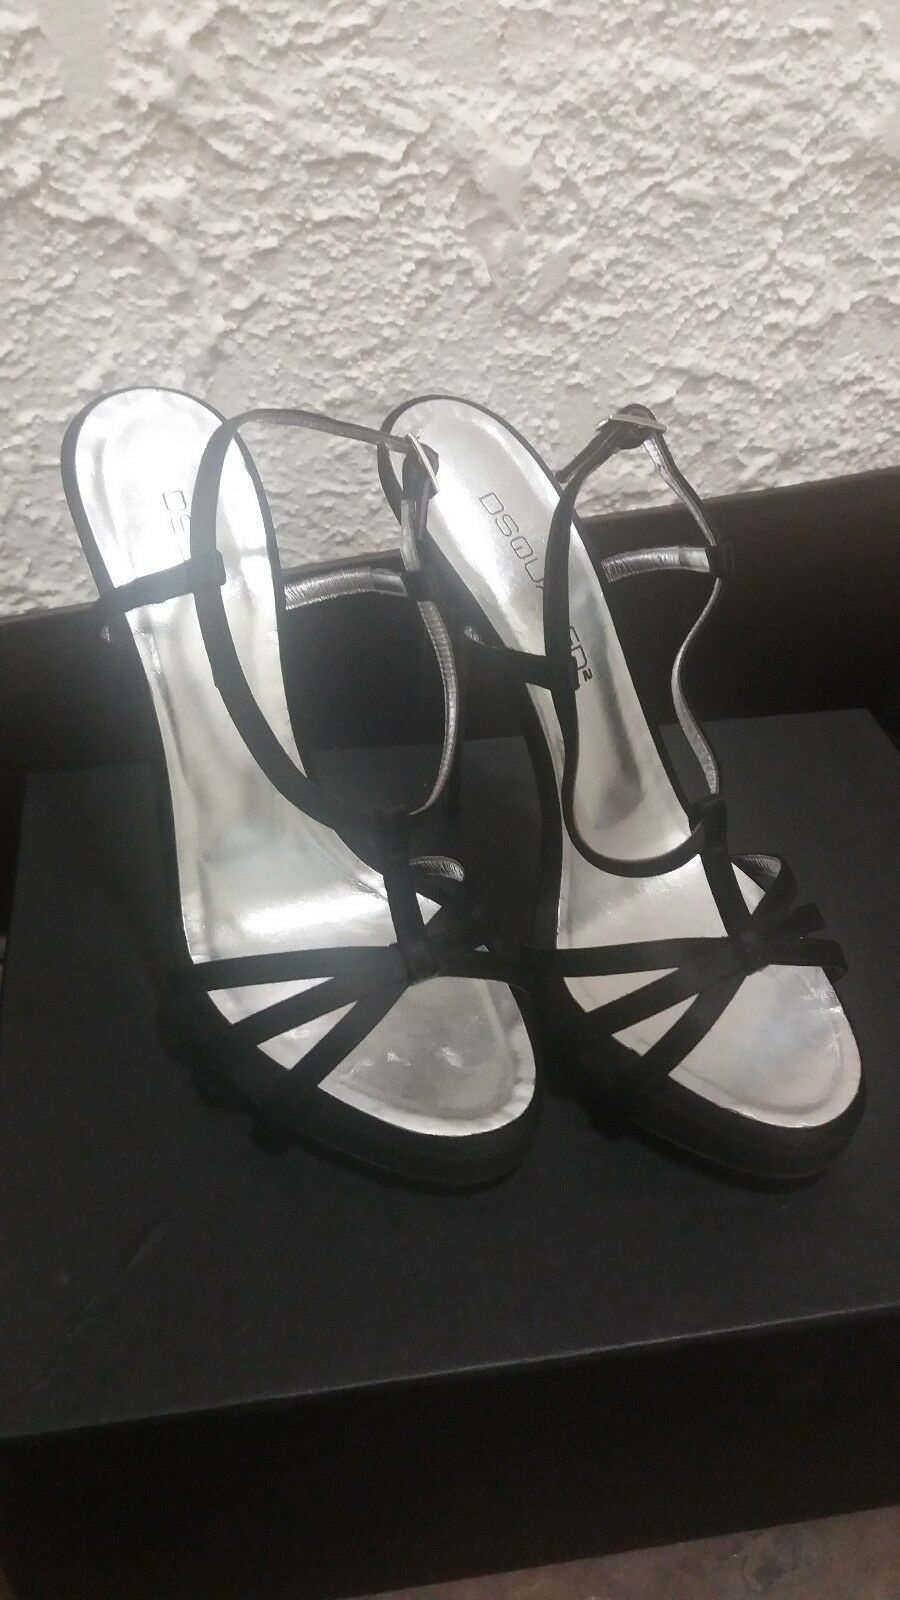 DSQUArouge2 Heels Sandals EU Taille Taille Taille 38B BRAND NEW Original Box US Taille 7.5  299.99 f24dde